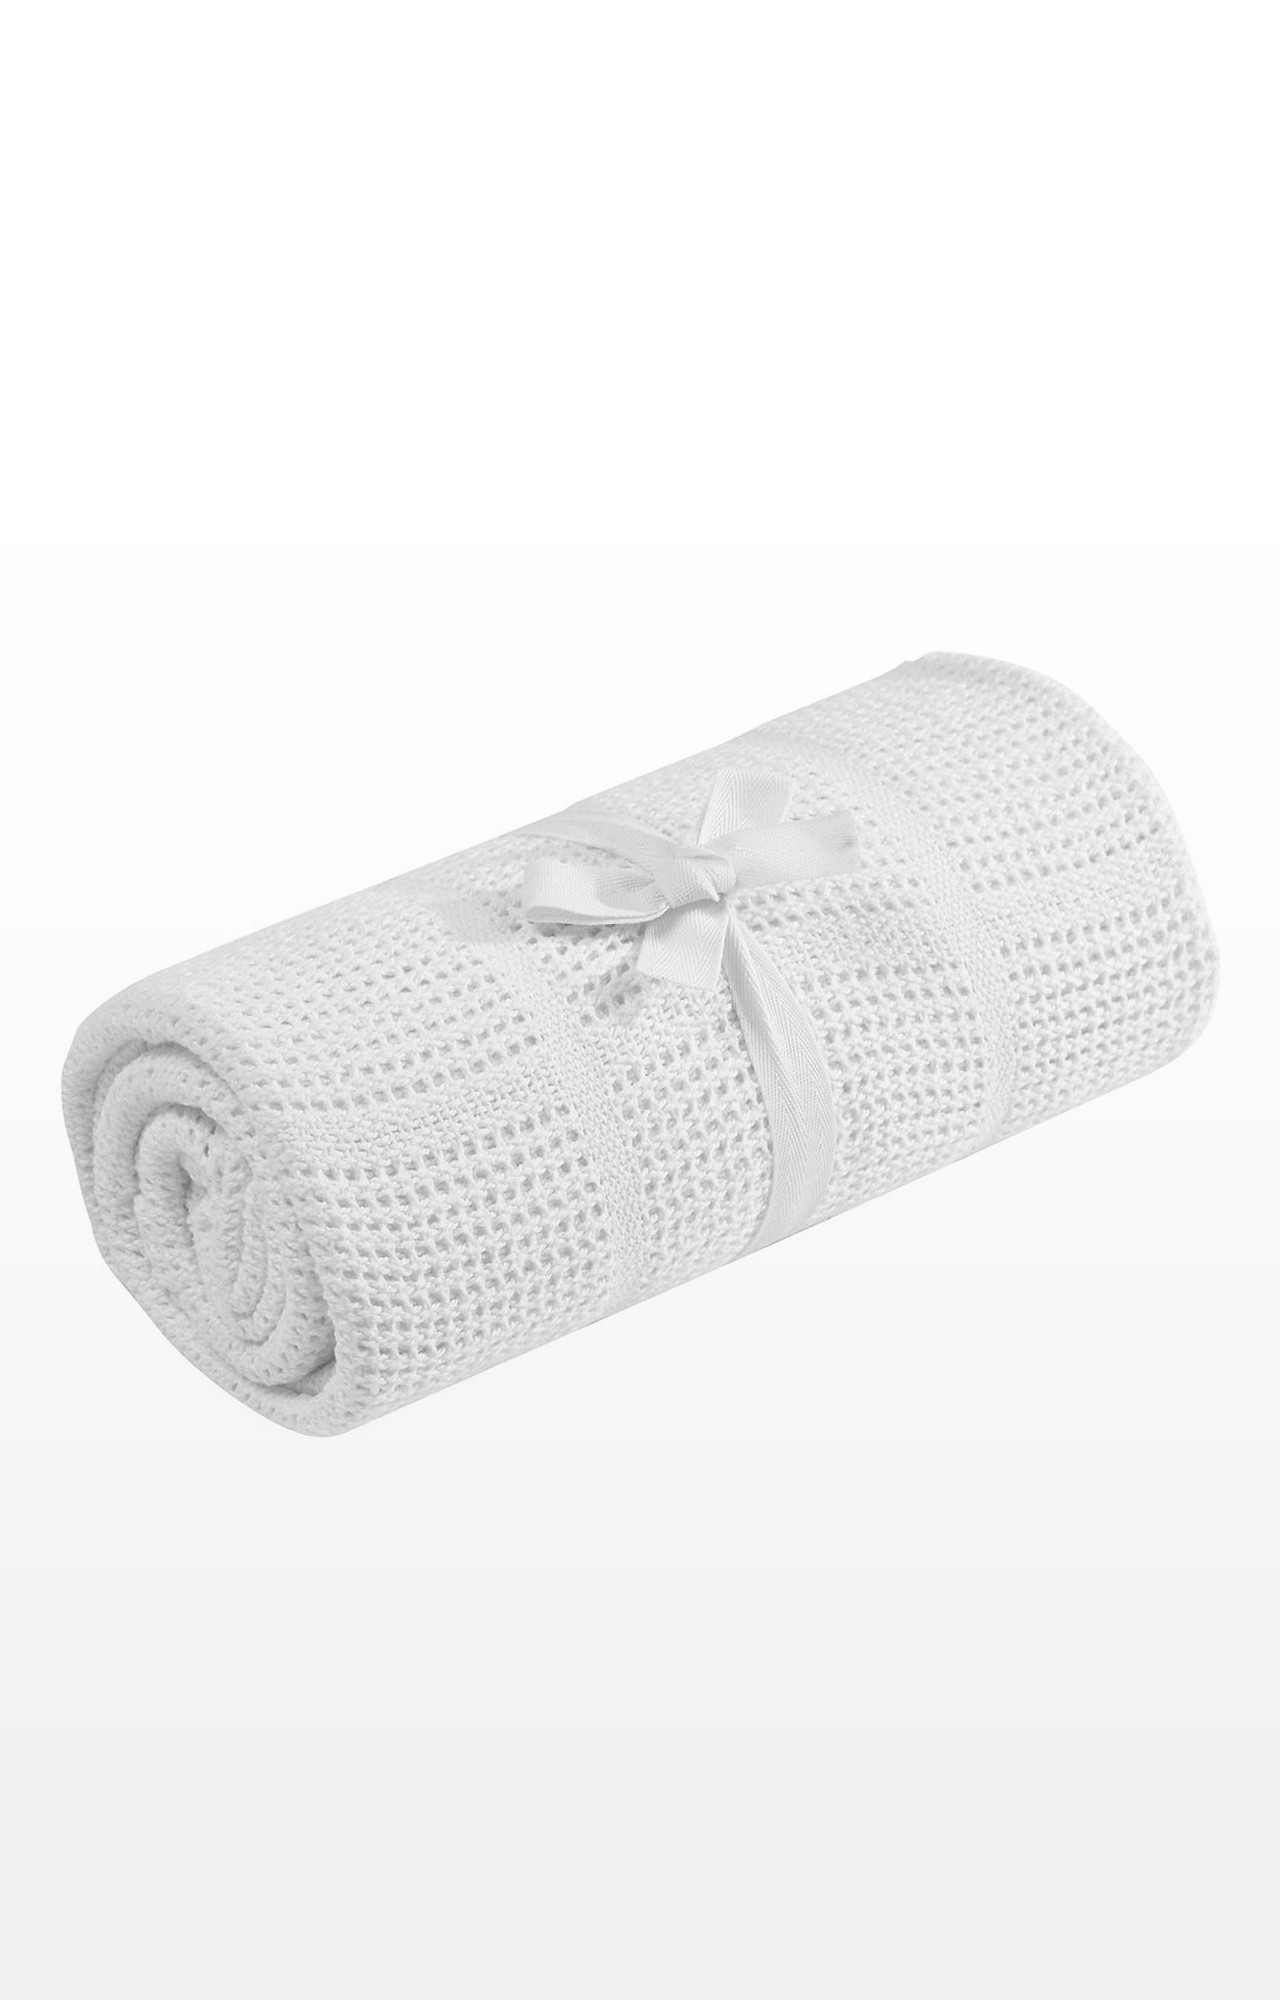 Mothercare   White Cot Or Cot Bed Cellular Cotton Blanket